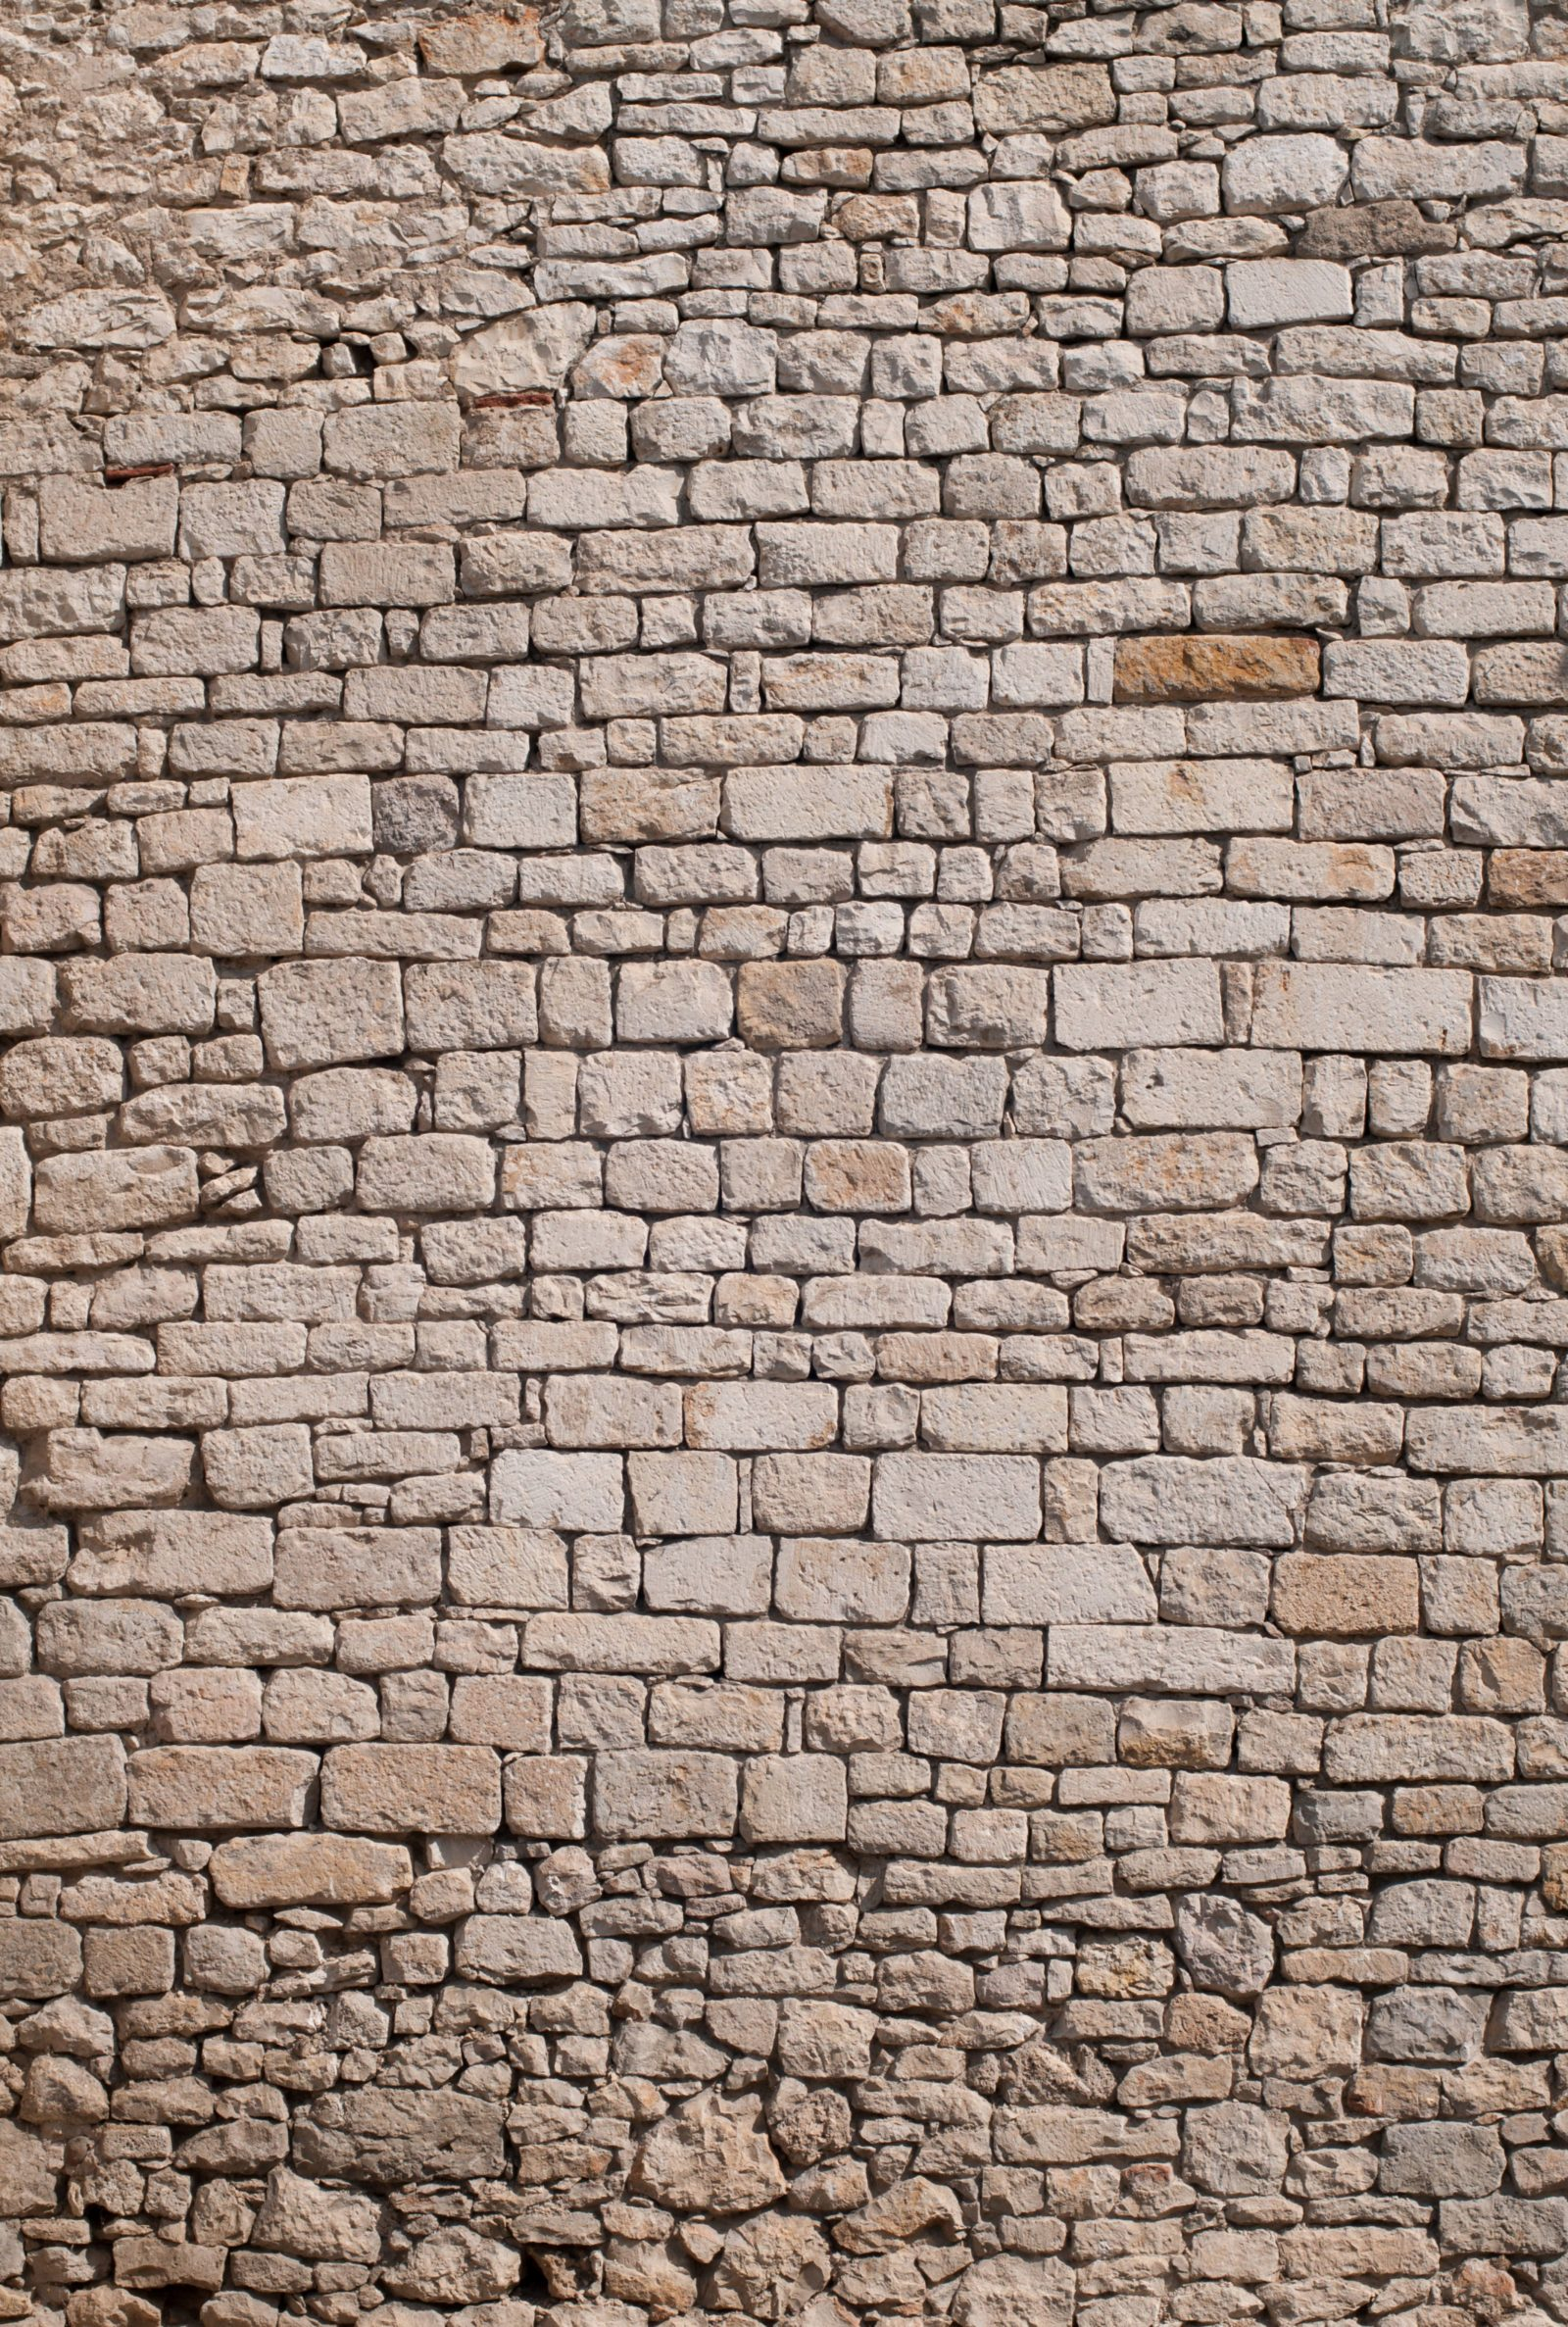 Old stone wall pattern from medieval castle